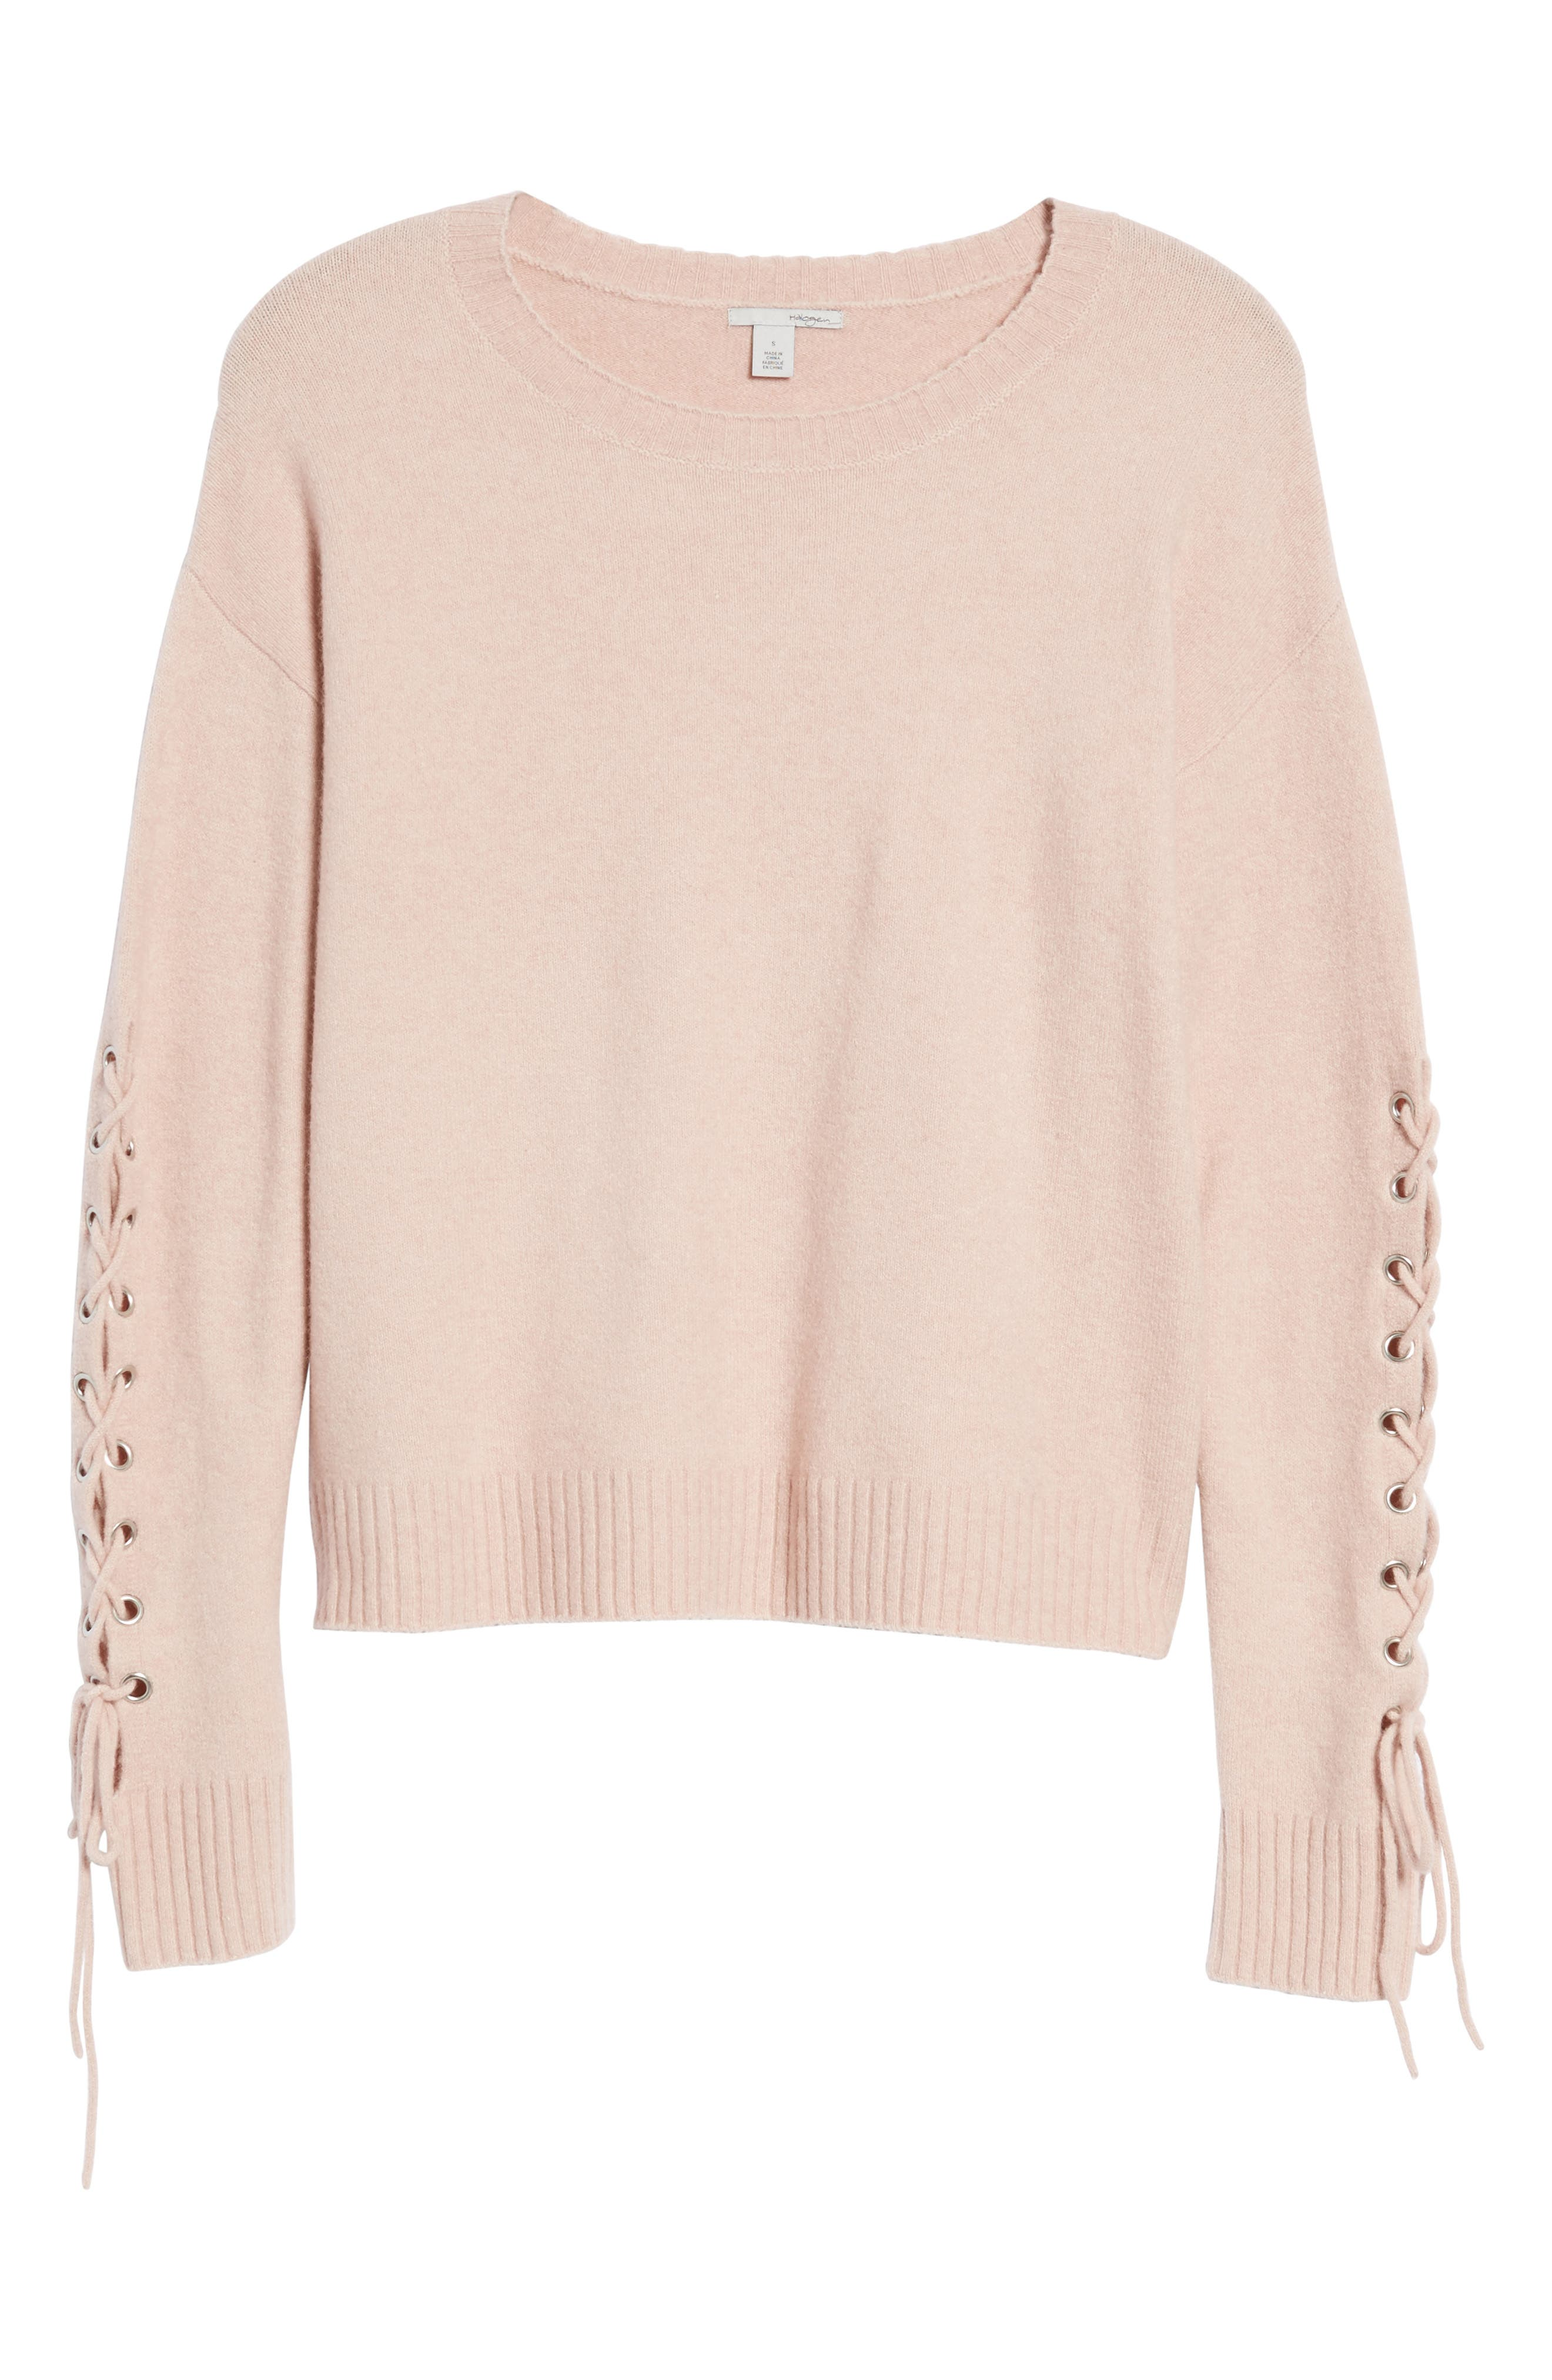 Lace-Up Sleeve Sweater,                             Alternate thumbnail 6, color,                             Pink Adobe